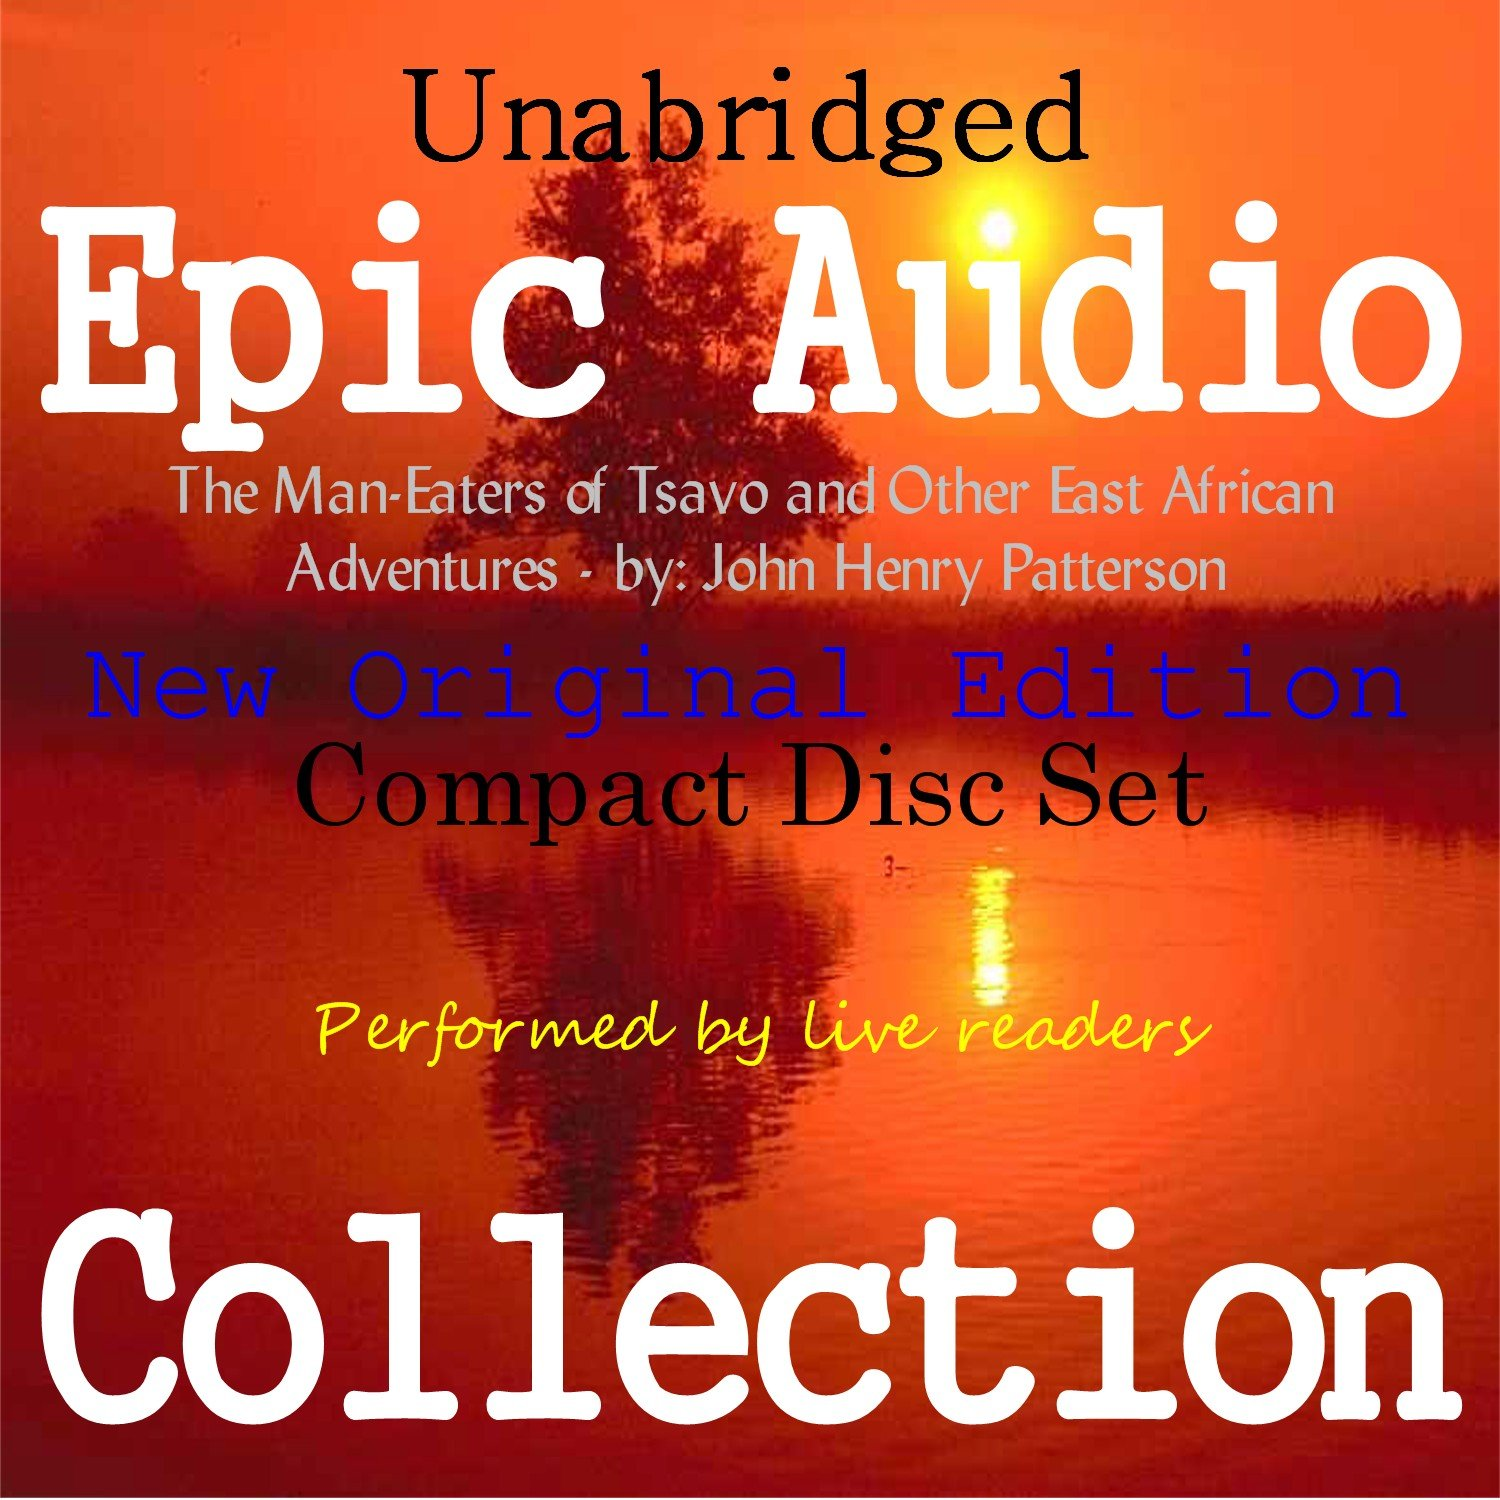 The Man-Eaters of Tsavo and Other East African Adventures [Epic Audio Collection]